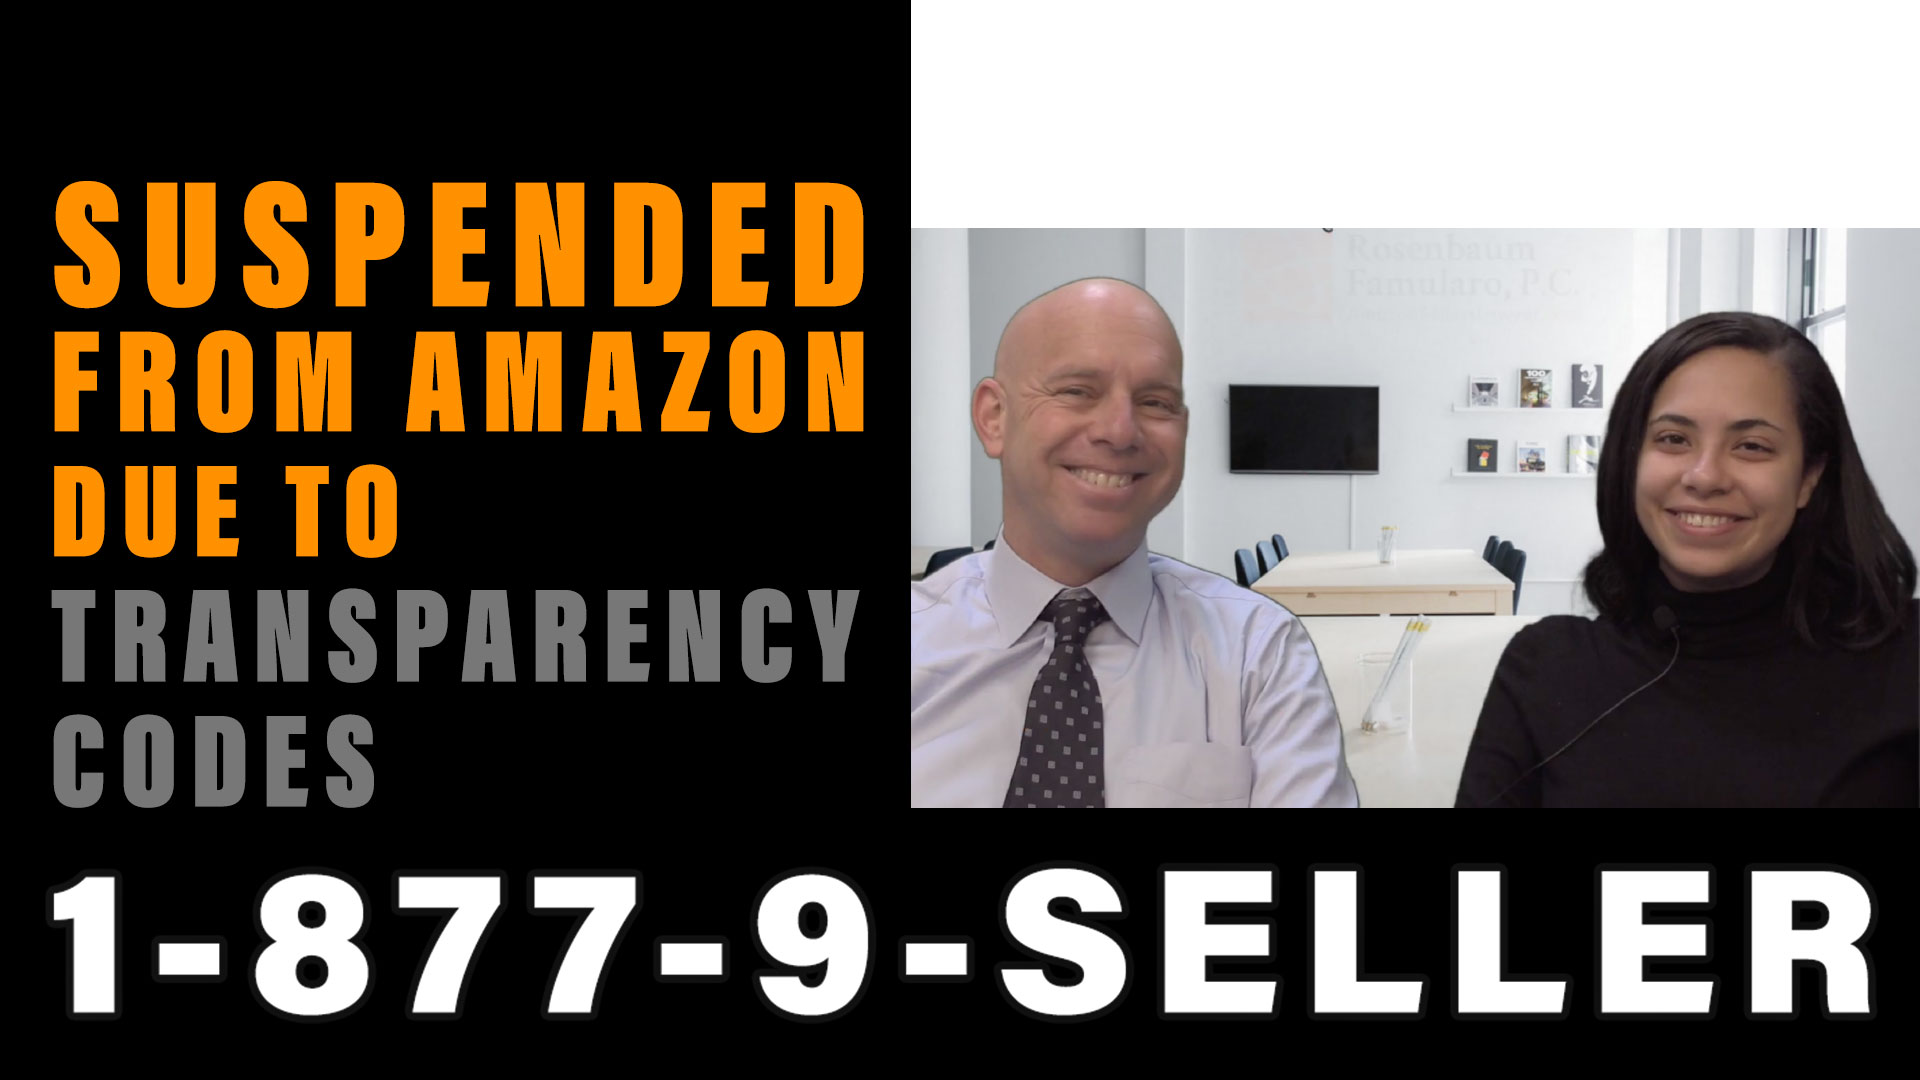 Suspended from Amazon due to Transparency Codes